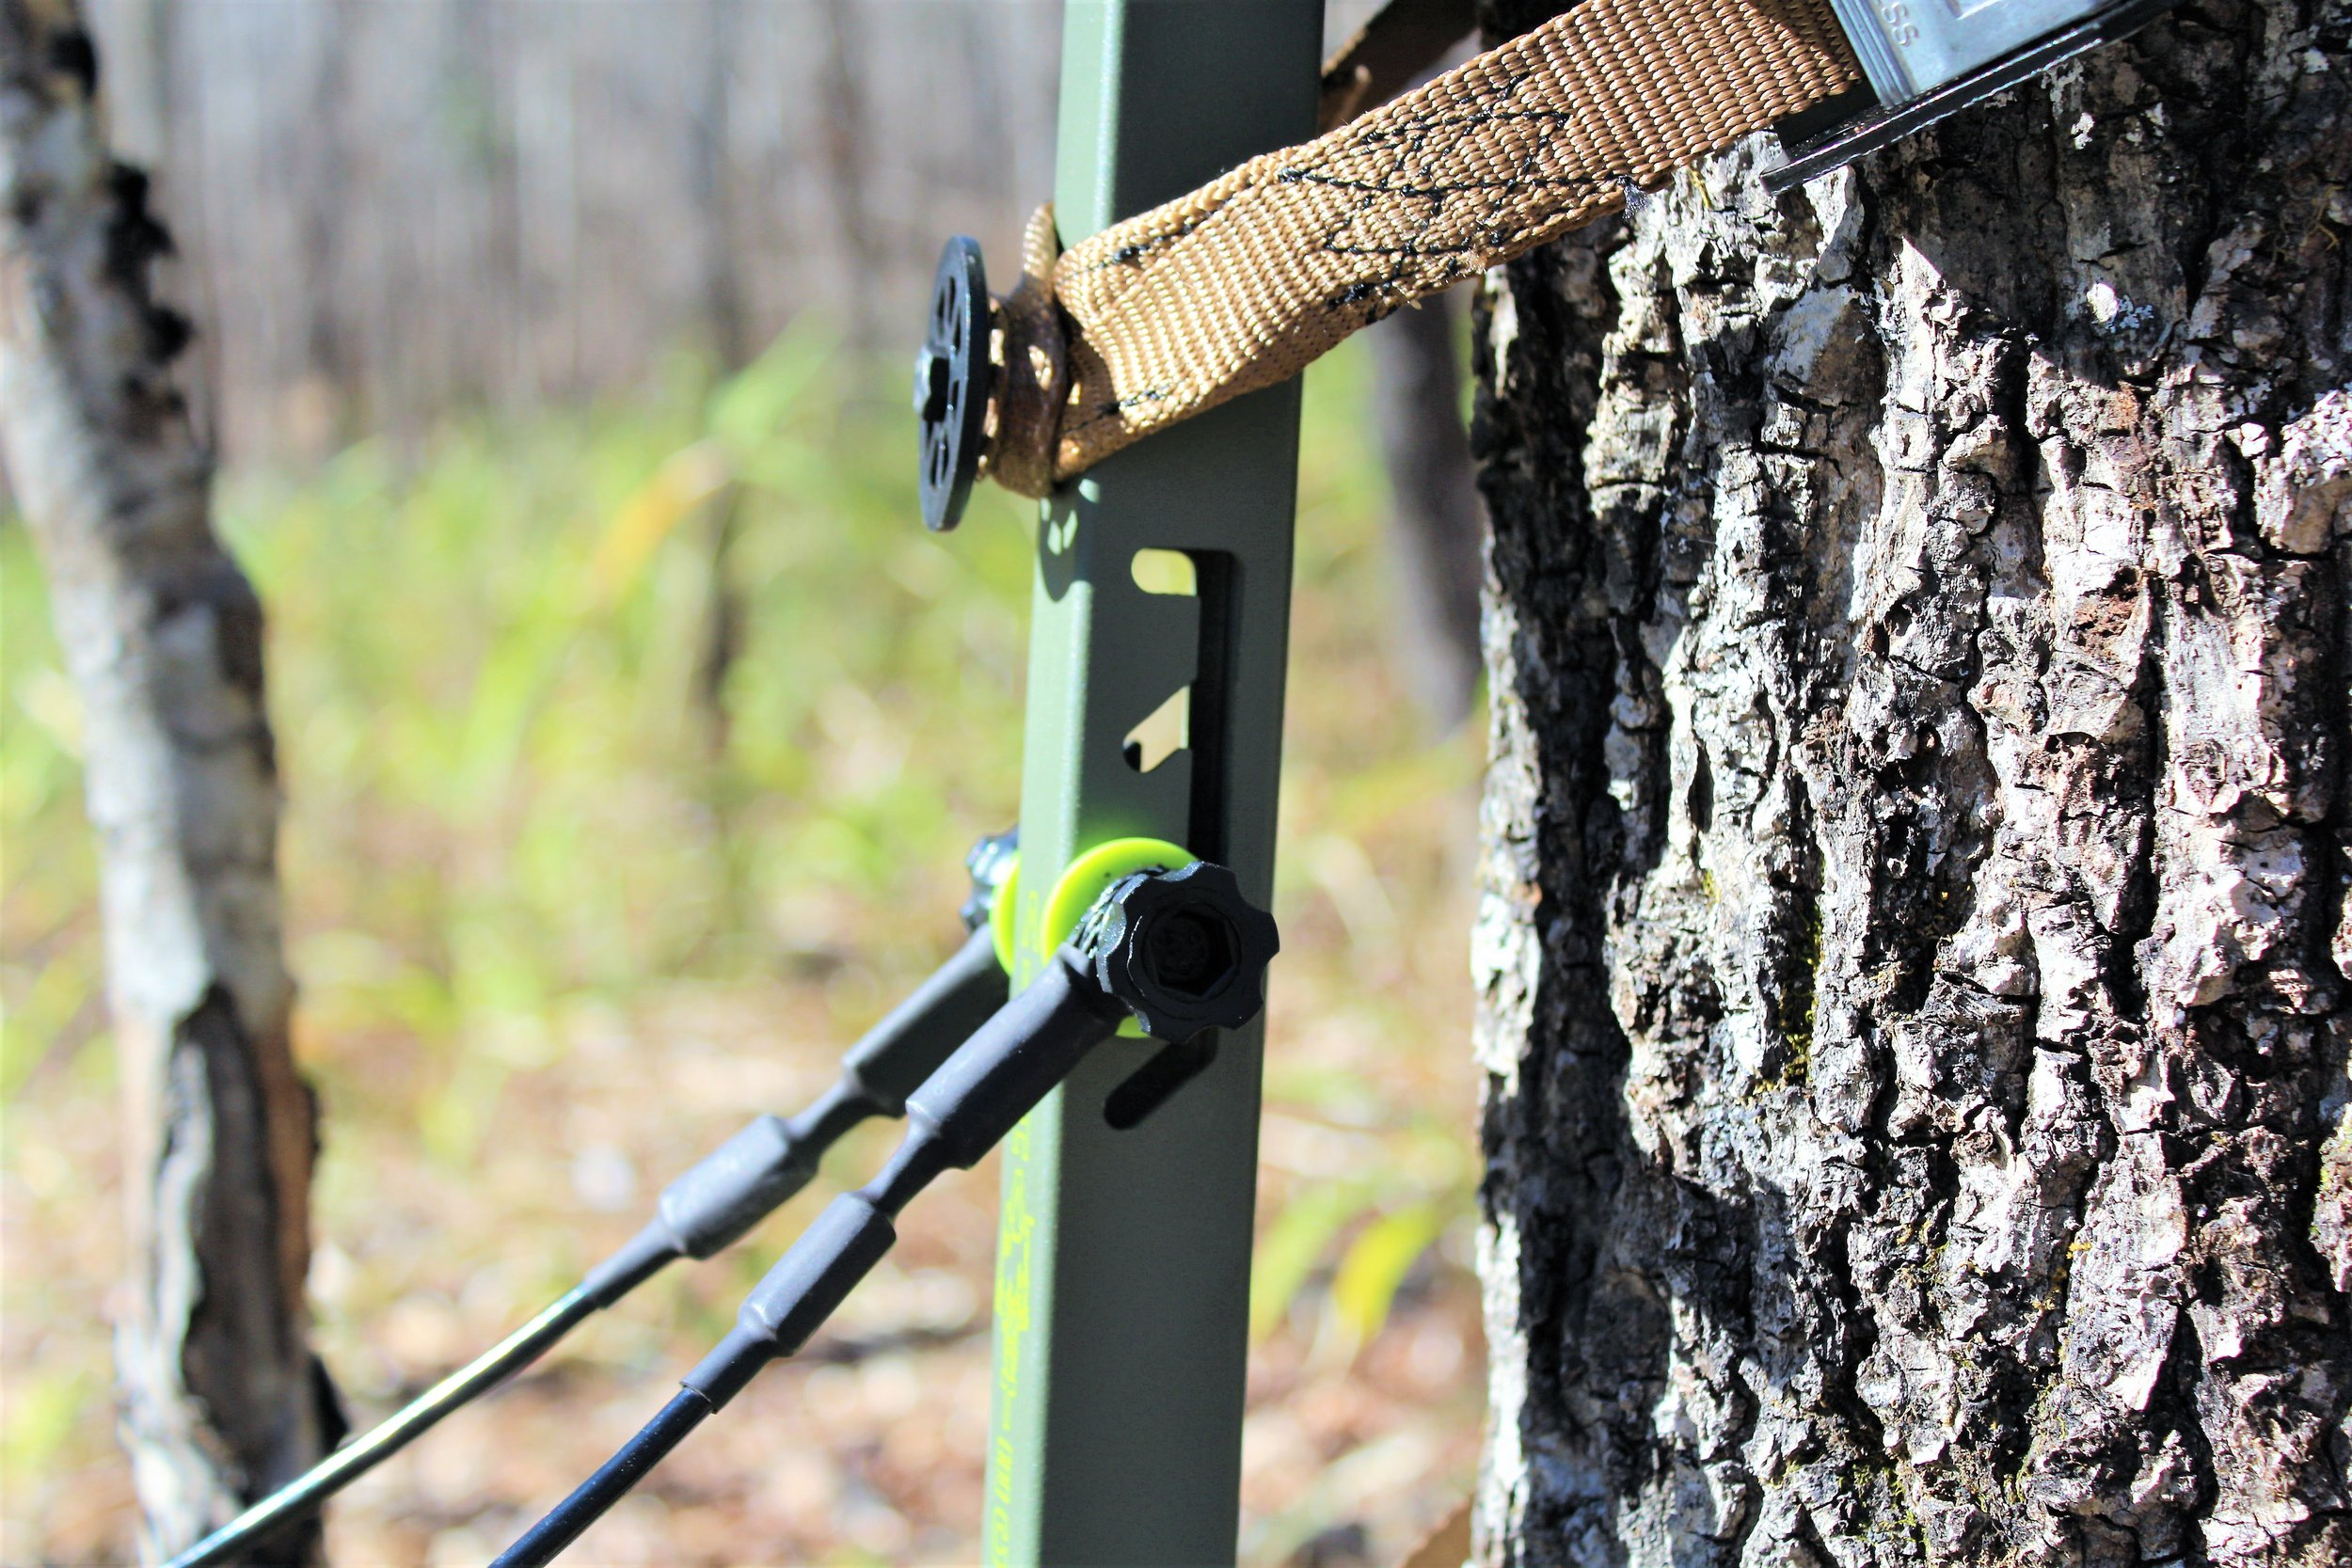 A look at the platform leveling system on the stand. This feature saves time while hanging the stand, especially when hanging in the dark. Also take note of the strap that goes around the tree. Lone Wolfs versa button system is not only easy to use, but its also deadly silent.